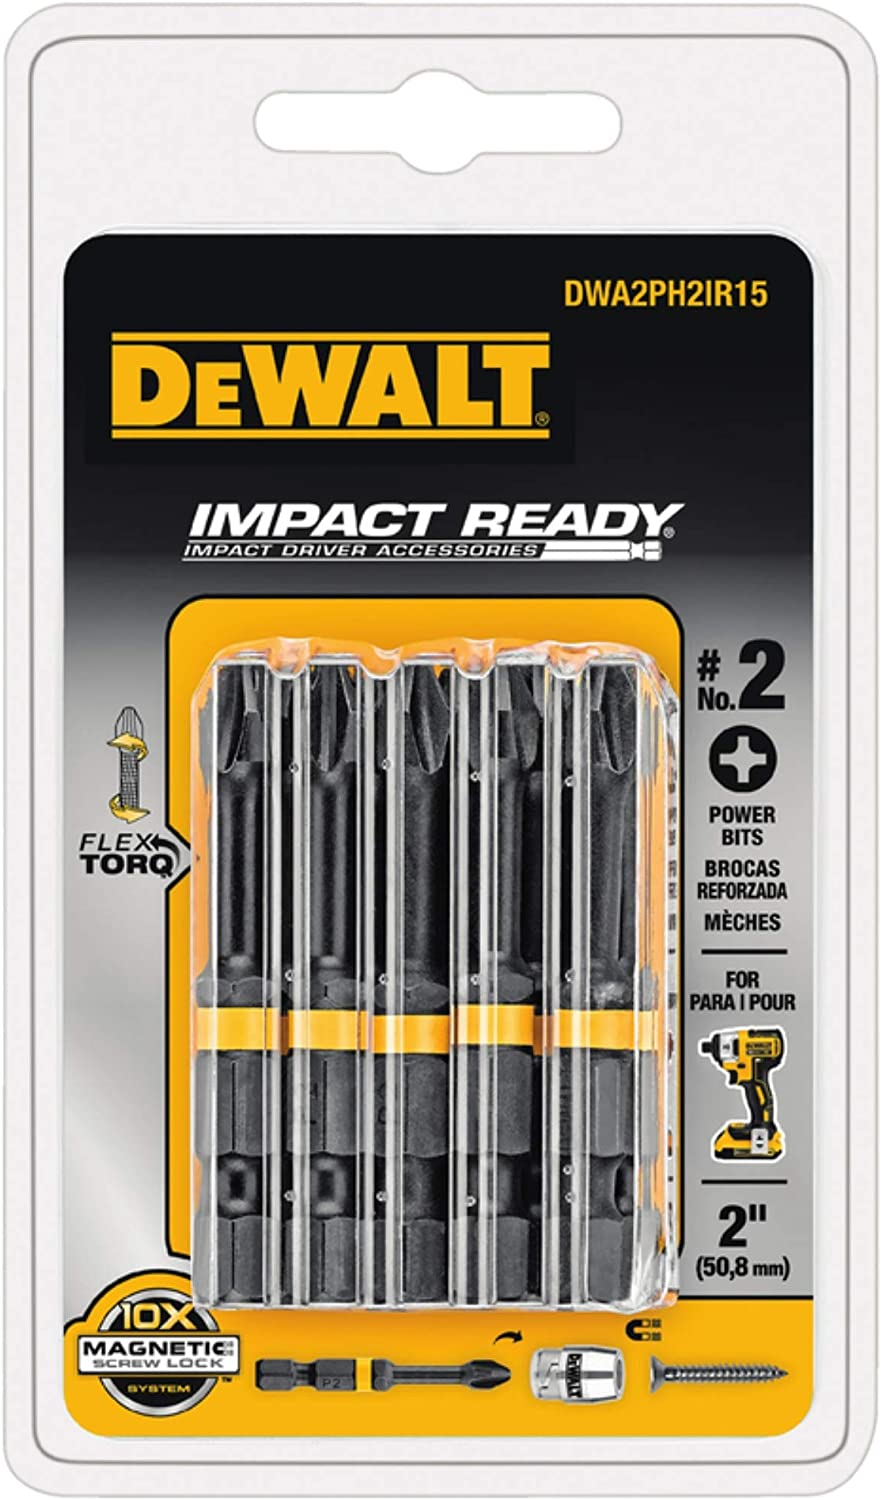 DeWalt Impact Ready Phillips #2 in. x 2 in. L Screwdriver Bit Black Oxide 15 pc.